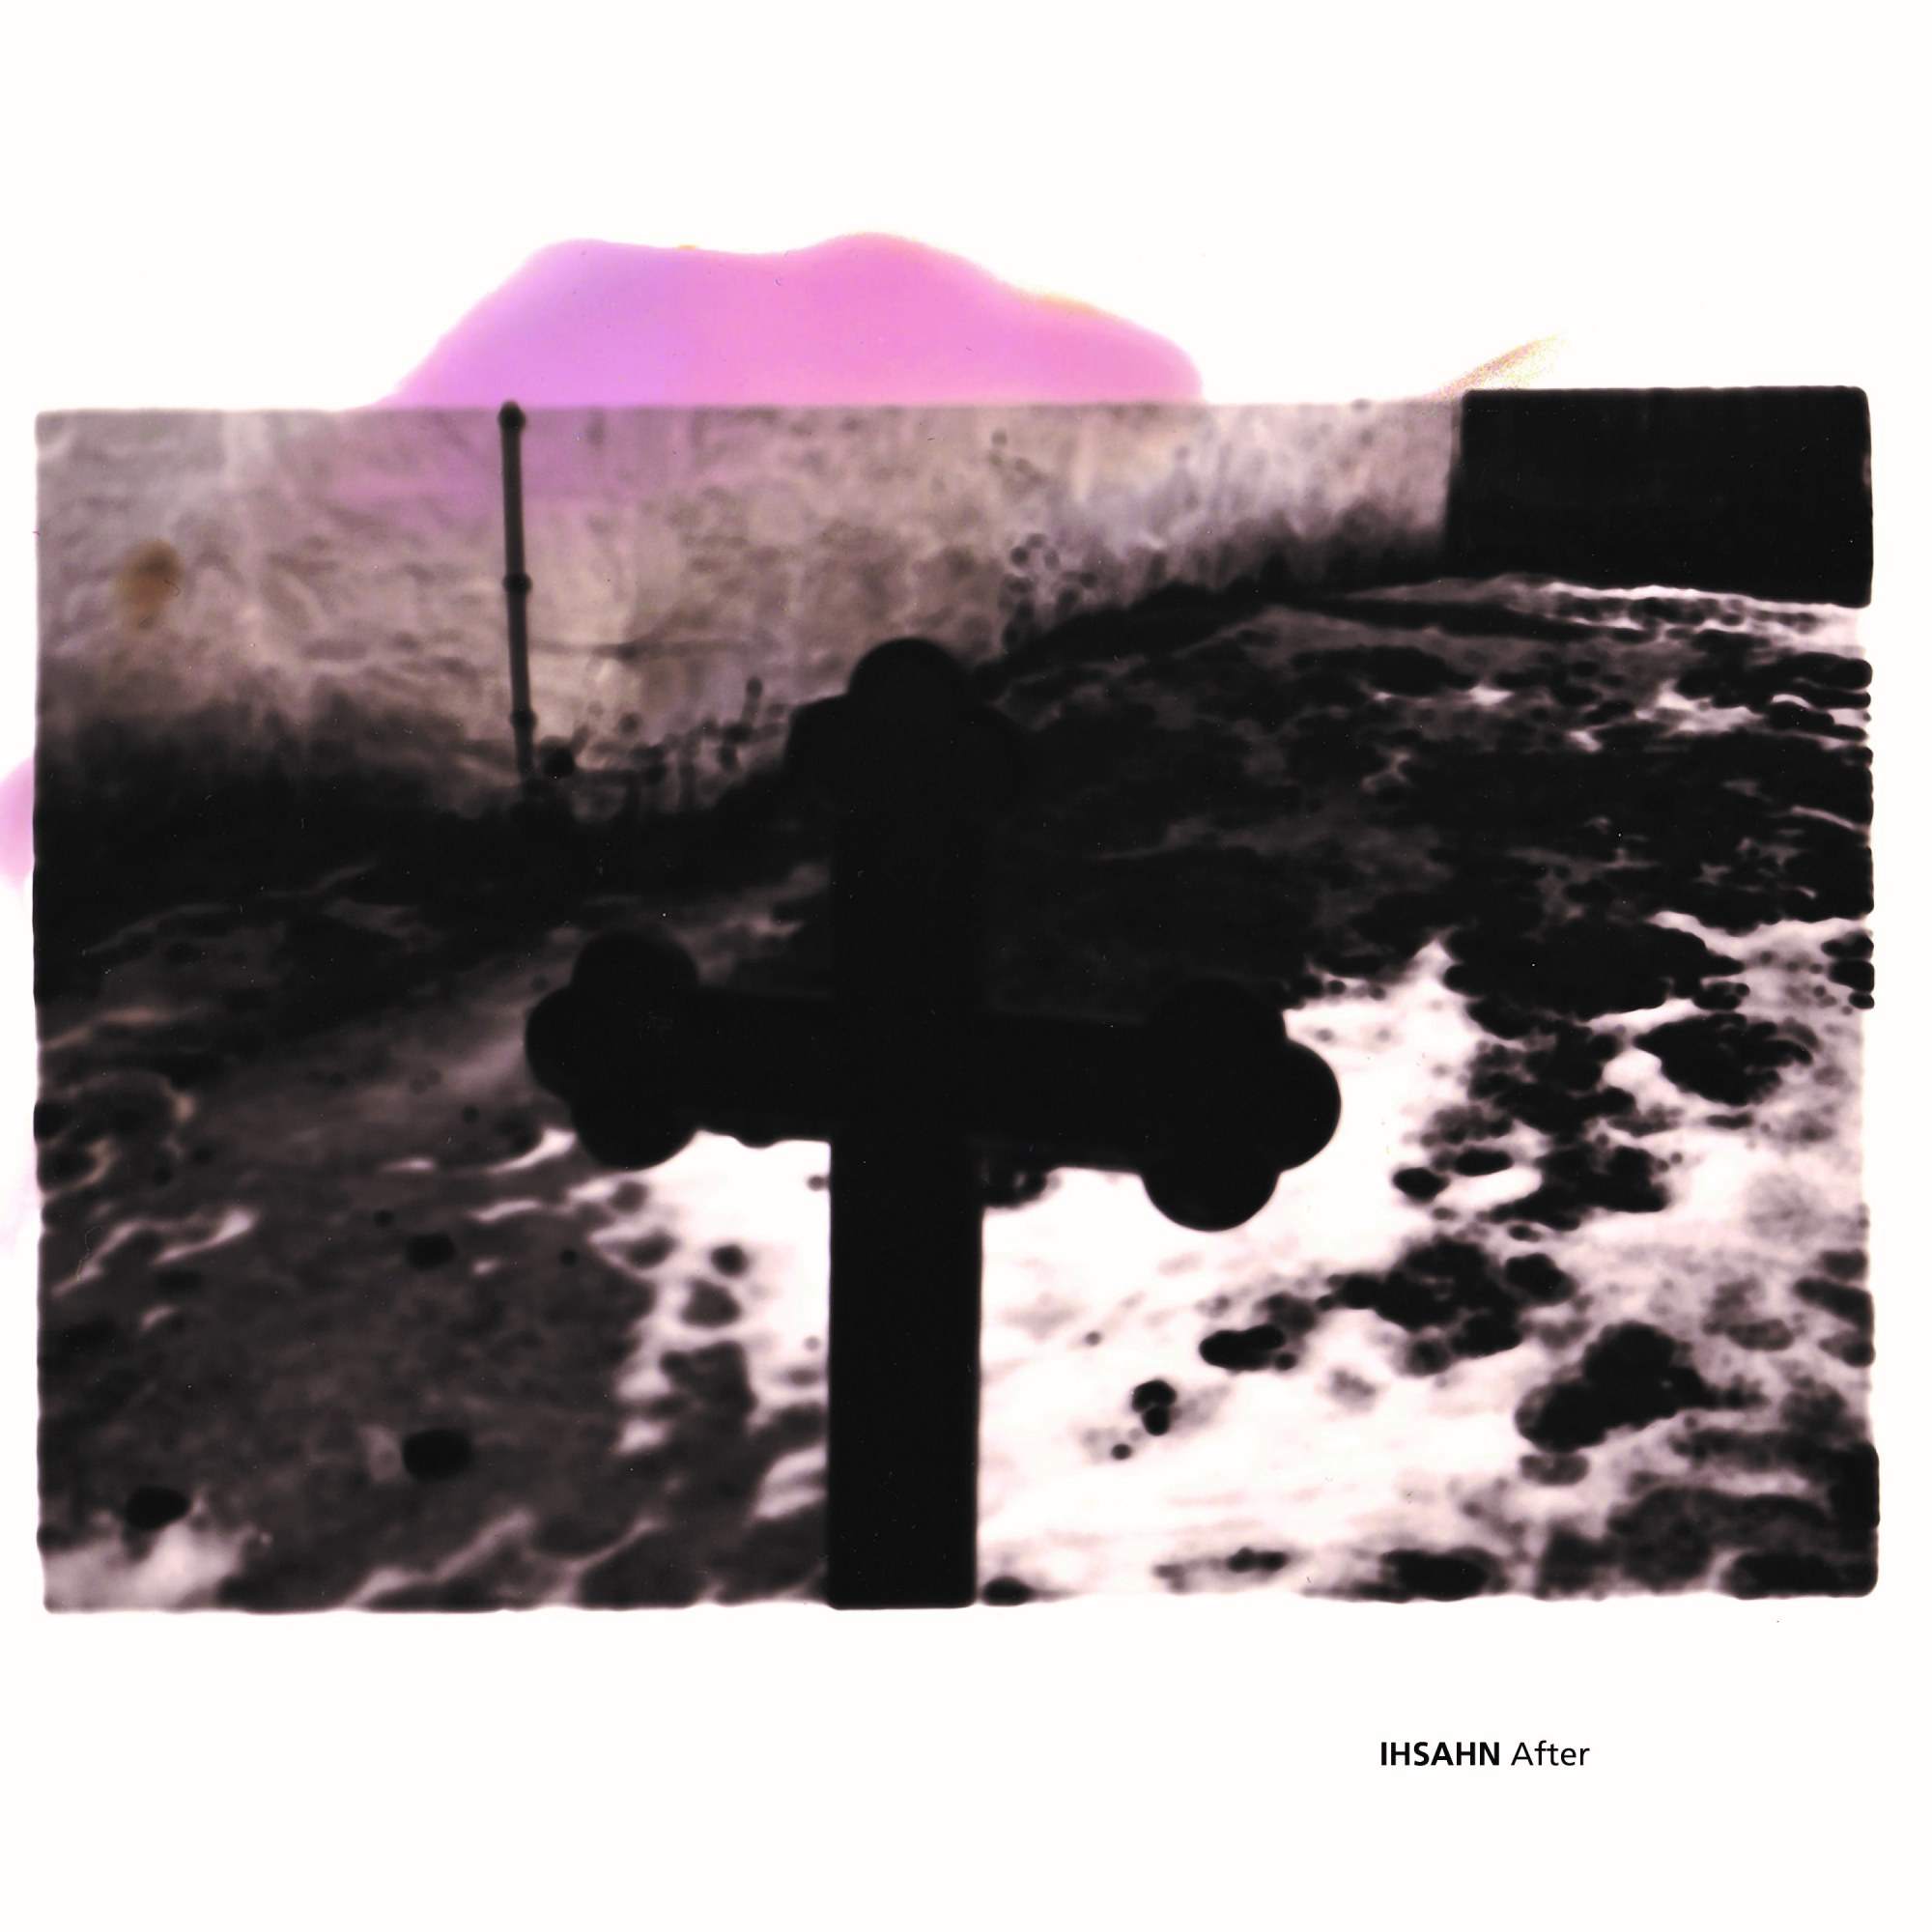 Review for Ihsahn - After